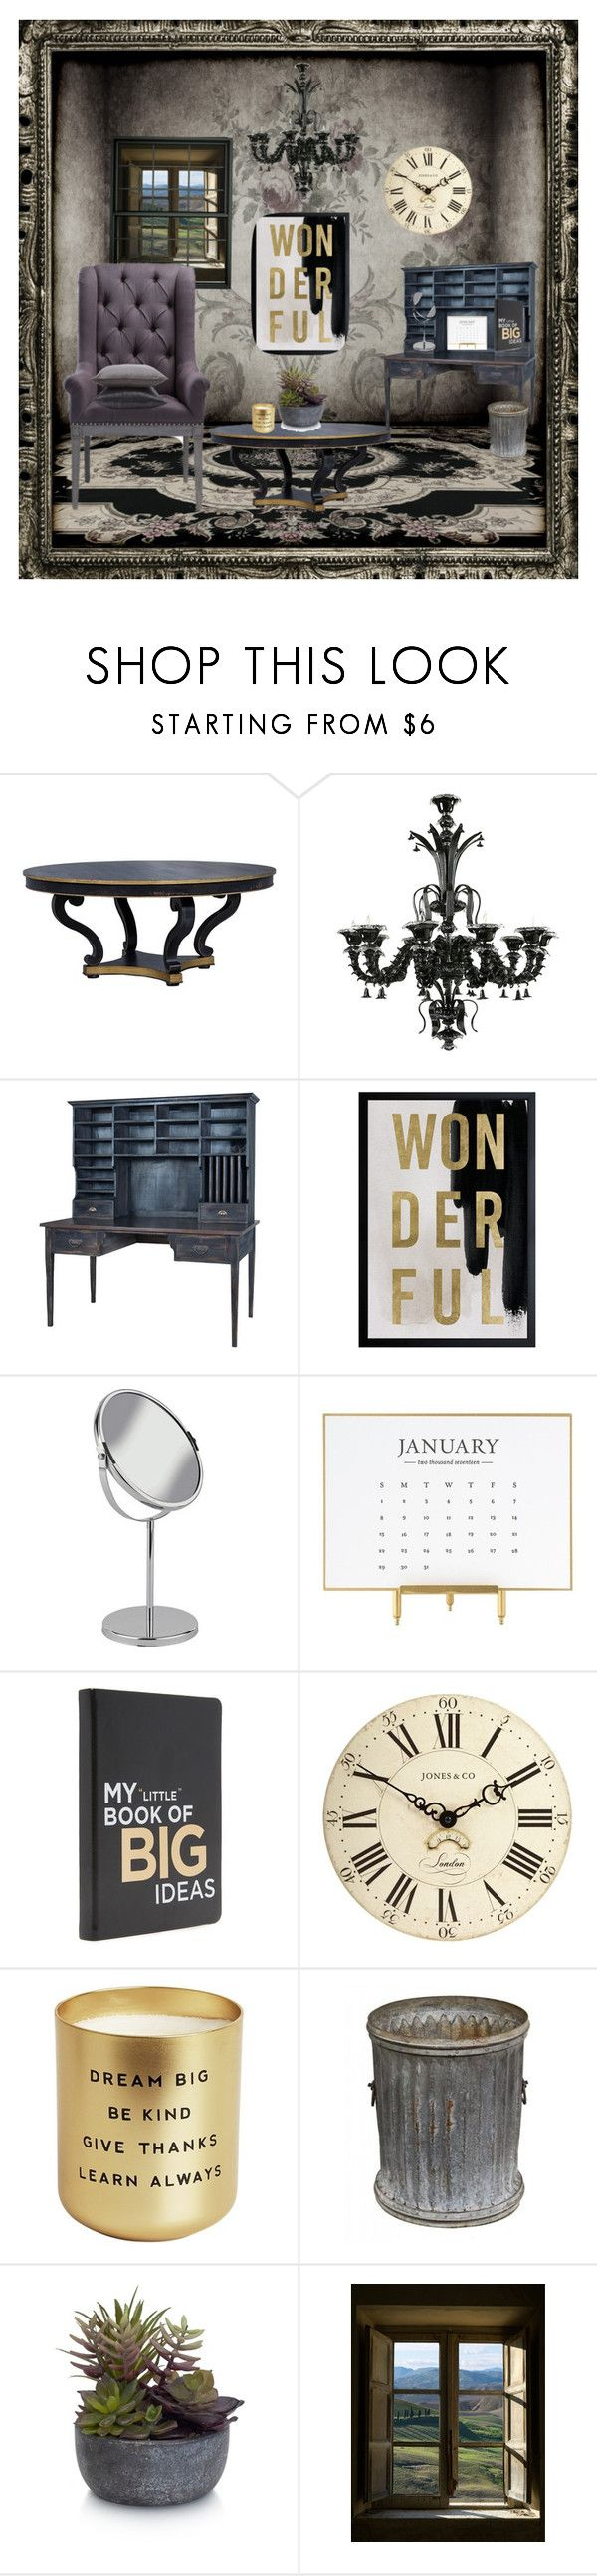 """Hideaway"" by evangel-dccx ❤ liked on Polyvore featuring interior, interiors, interior design, home, home decor, interior decorating, Cyan Design, Oliver Gal Artist Co., Sugar Paper and American Vintage"